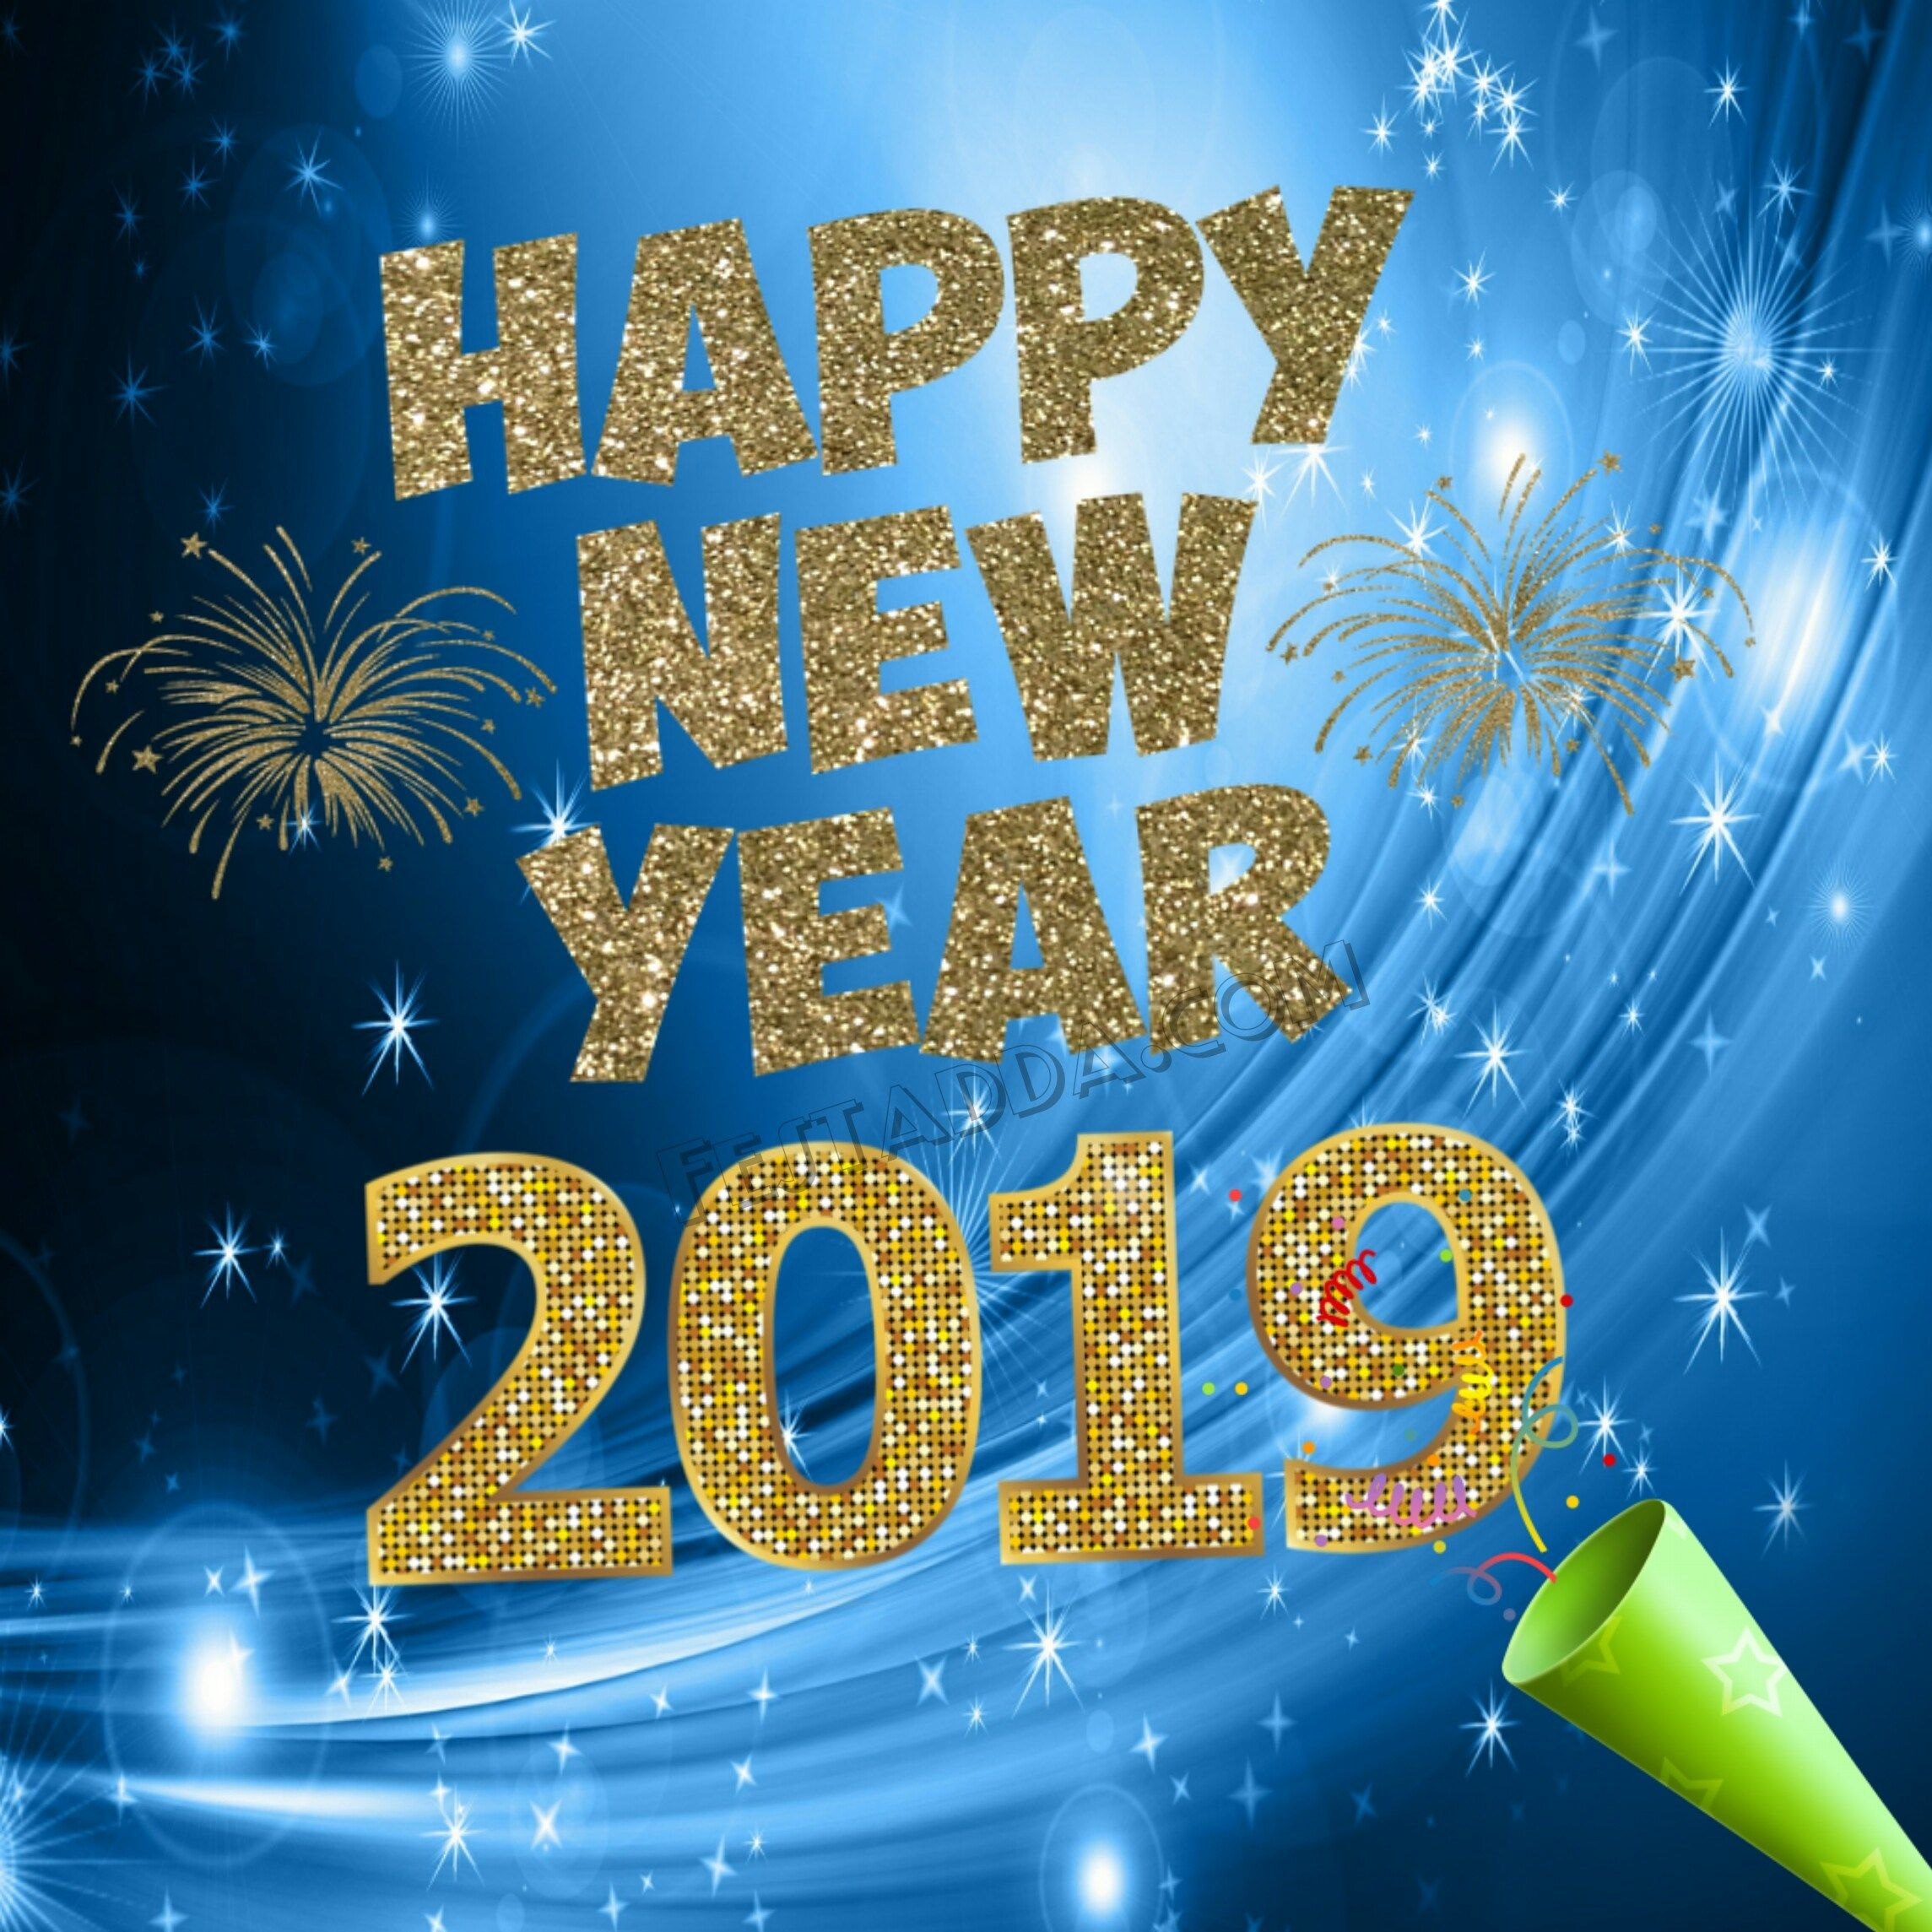 Happy New Year Wishes 2020 Images Photos Wallpapers Pics Full Hd